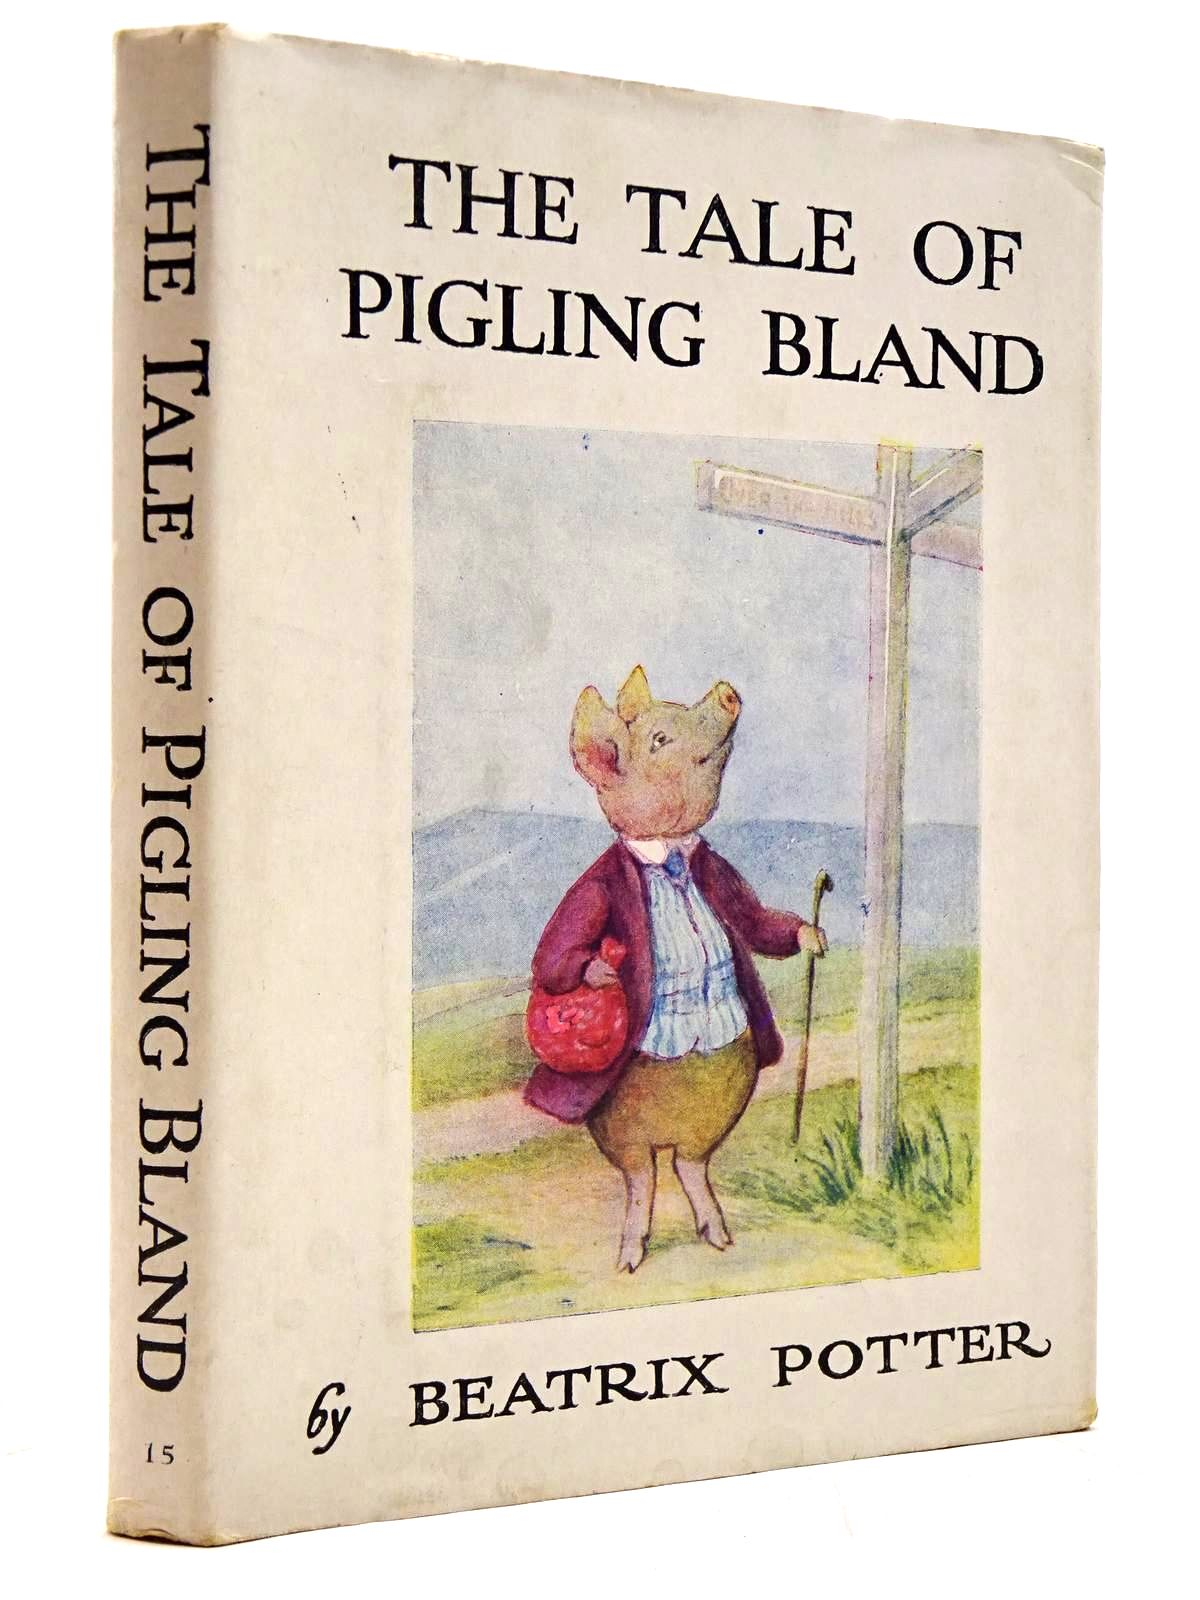 Photo of THE TALE OF PIGLING BLAND written by Potter, Beatrix illustrated by Potter, Beatrix published by Frederick Warne & Co Ltd. (STOCK CODE: 2131312)  for sale by Stella & Rose's Books